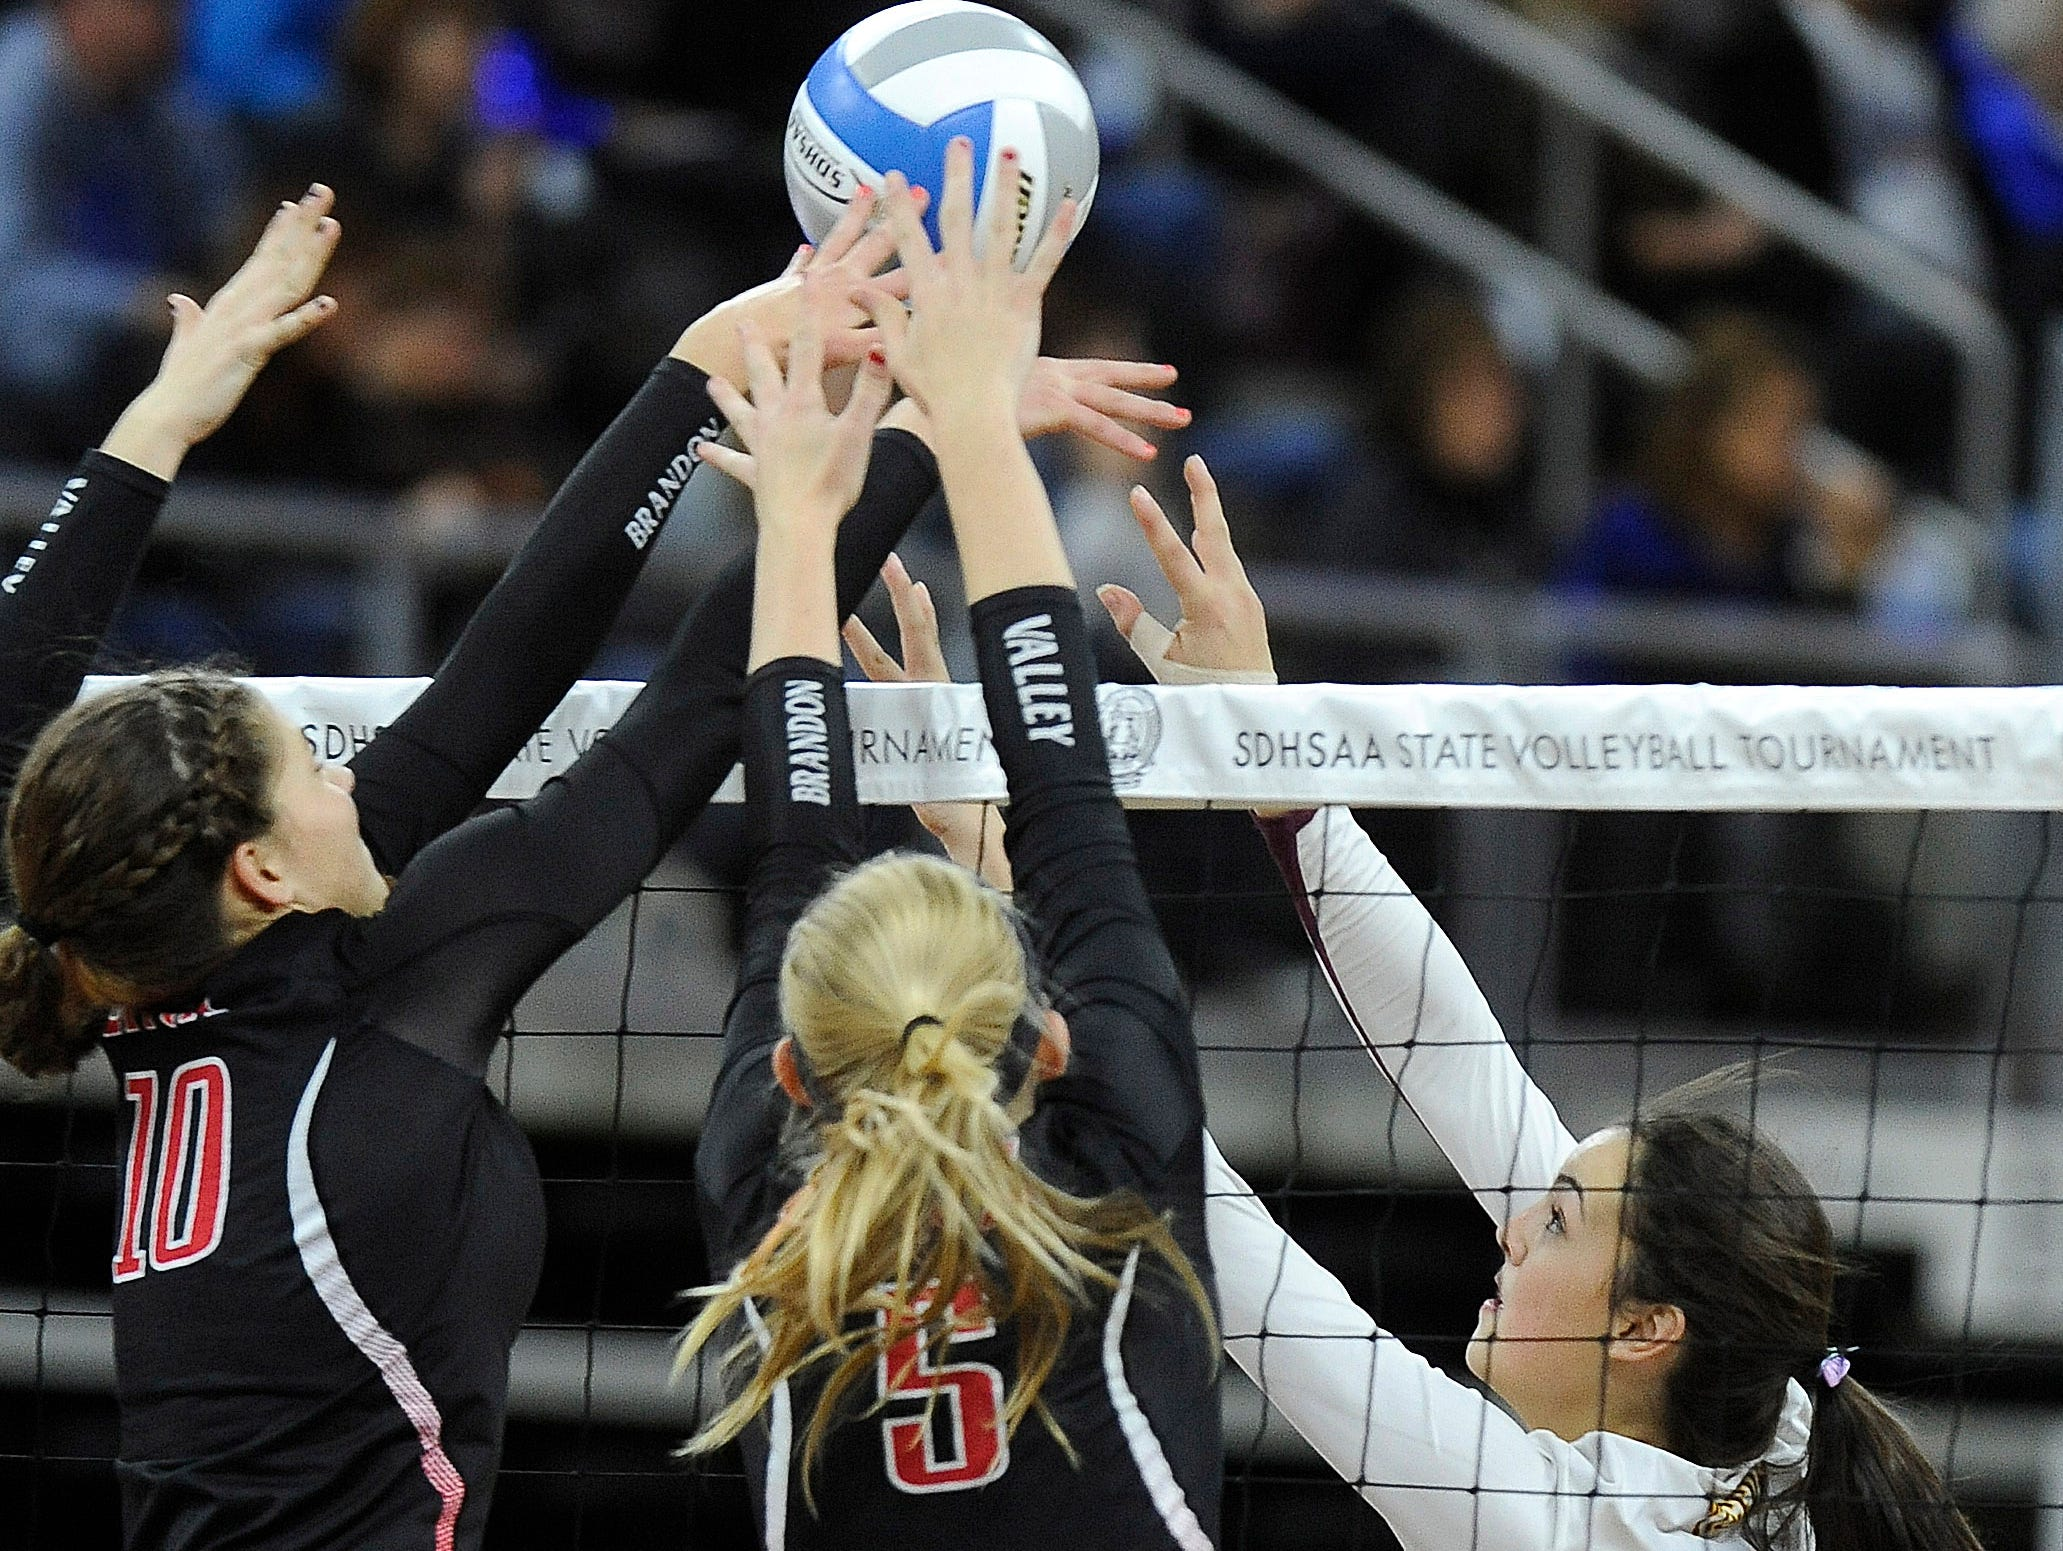 Harrisburg's #3 Samantha Slaughter sets the volleyball against Brandon Valley's #10 Hannah Paauw and #5 Hanna Jellema during state semifinals volleyball action at the Denny Sanford Premier Center in Sioux Falls, S.D., Friday, Nov. 20, 2015.